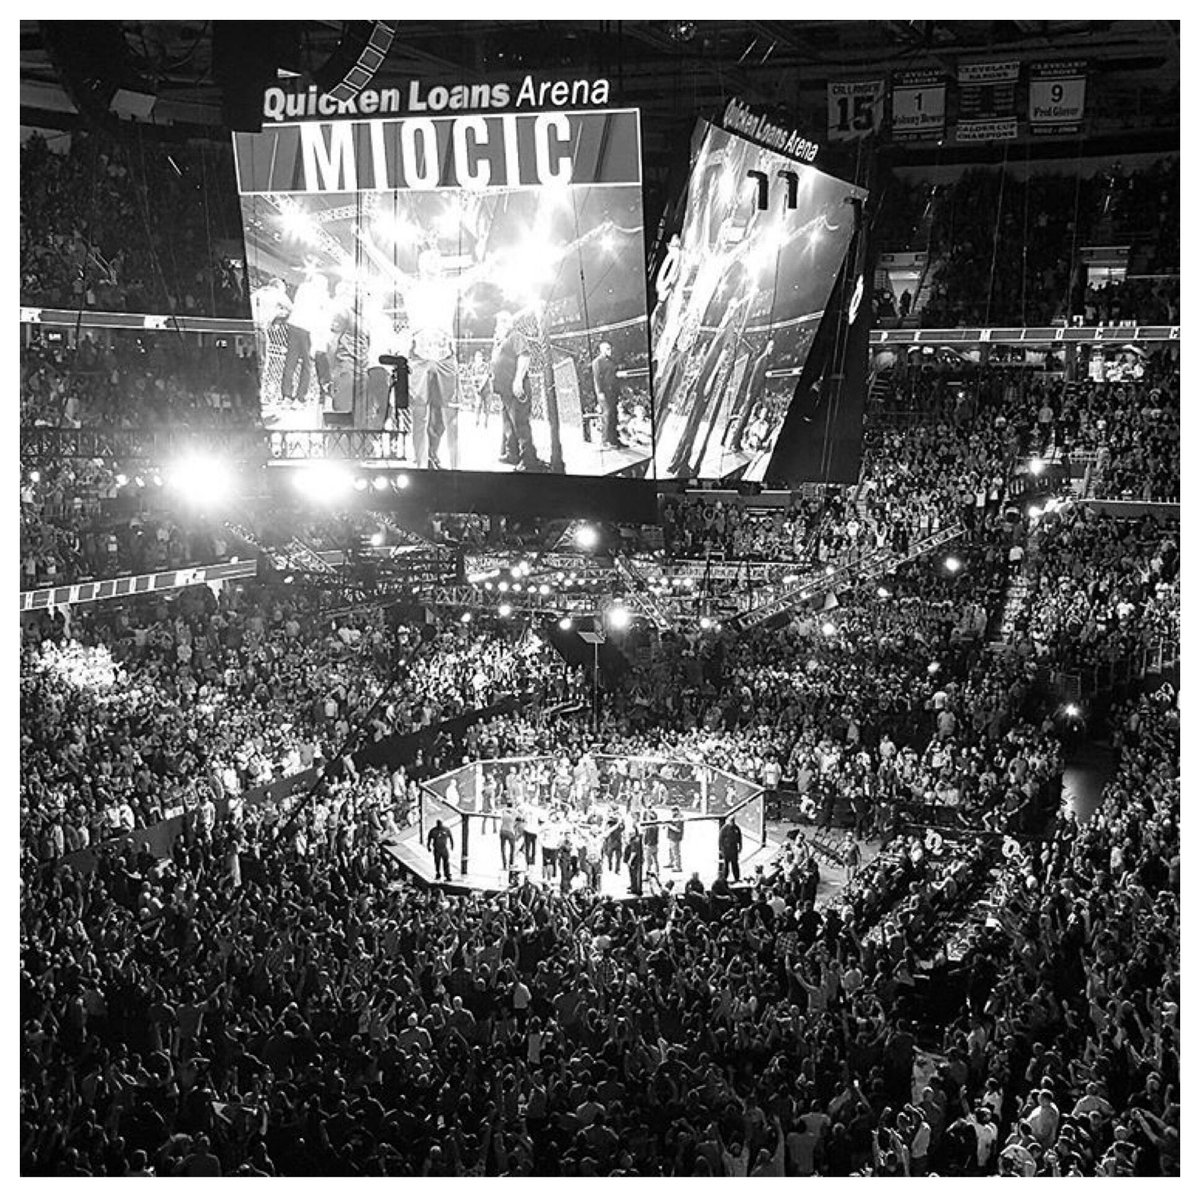 First time UFC ever came to Cleveland, OH. First time I ever defended my belt. That was a good night!